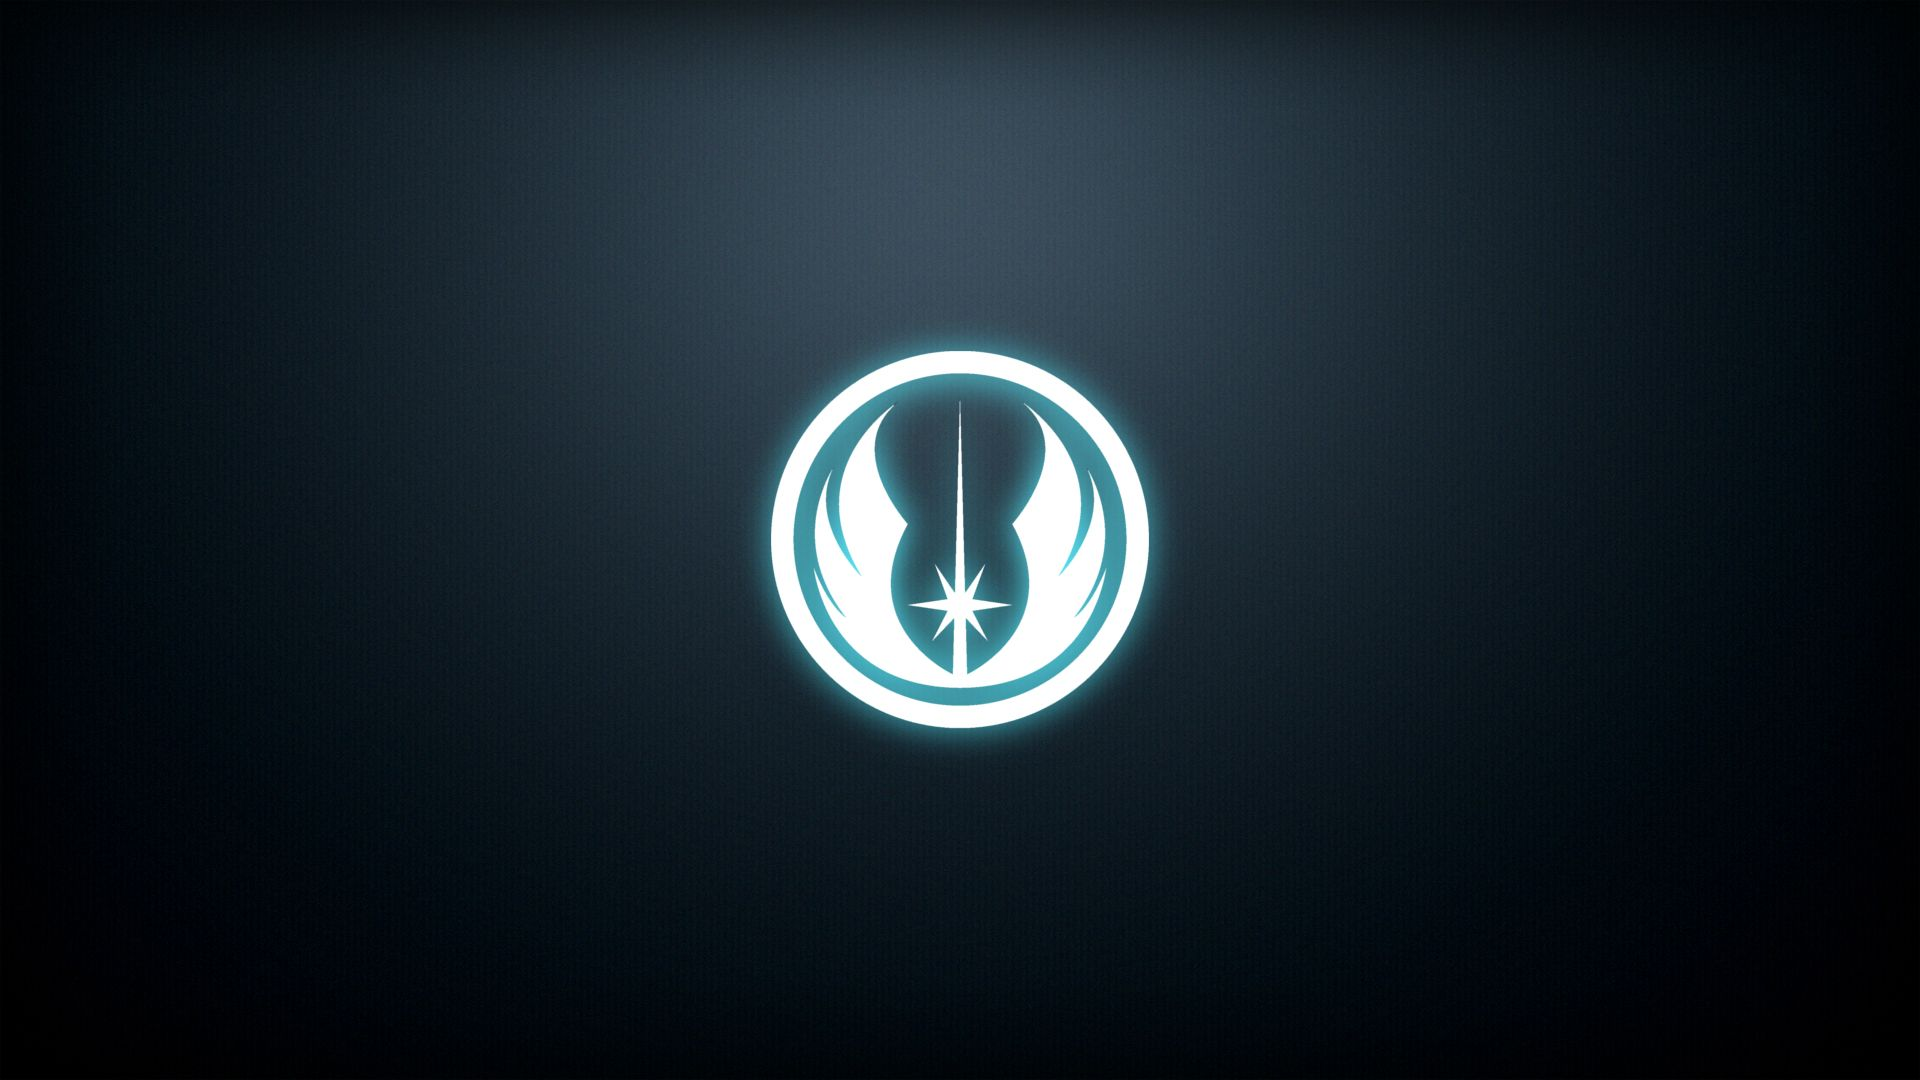 FunMozar Star Wars Wallpapers Part 3 1920x1080